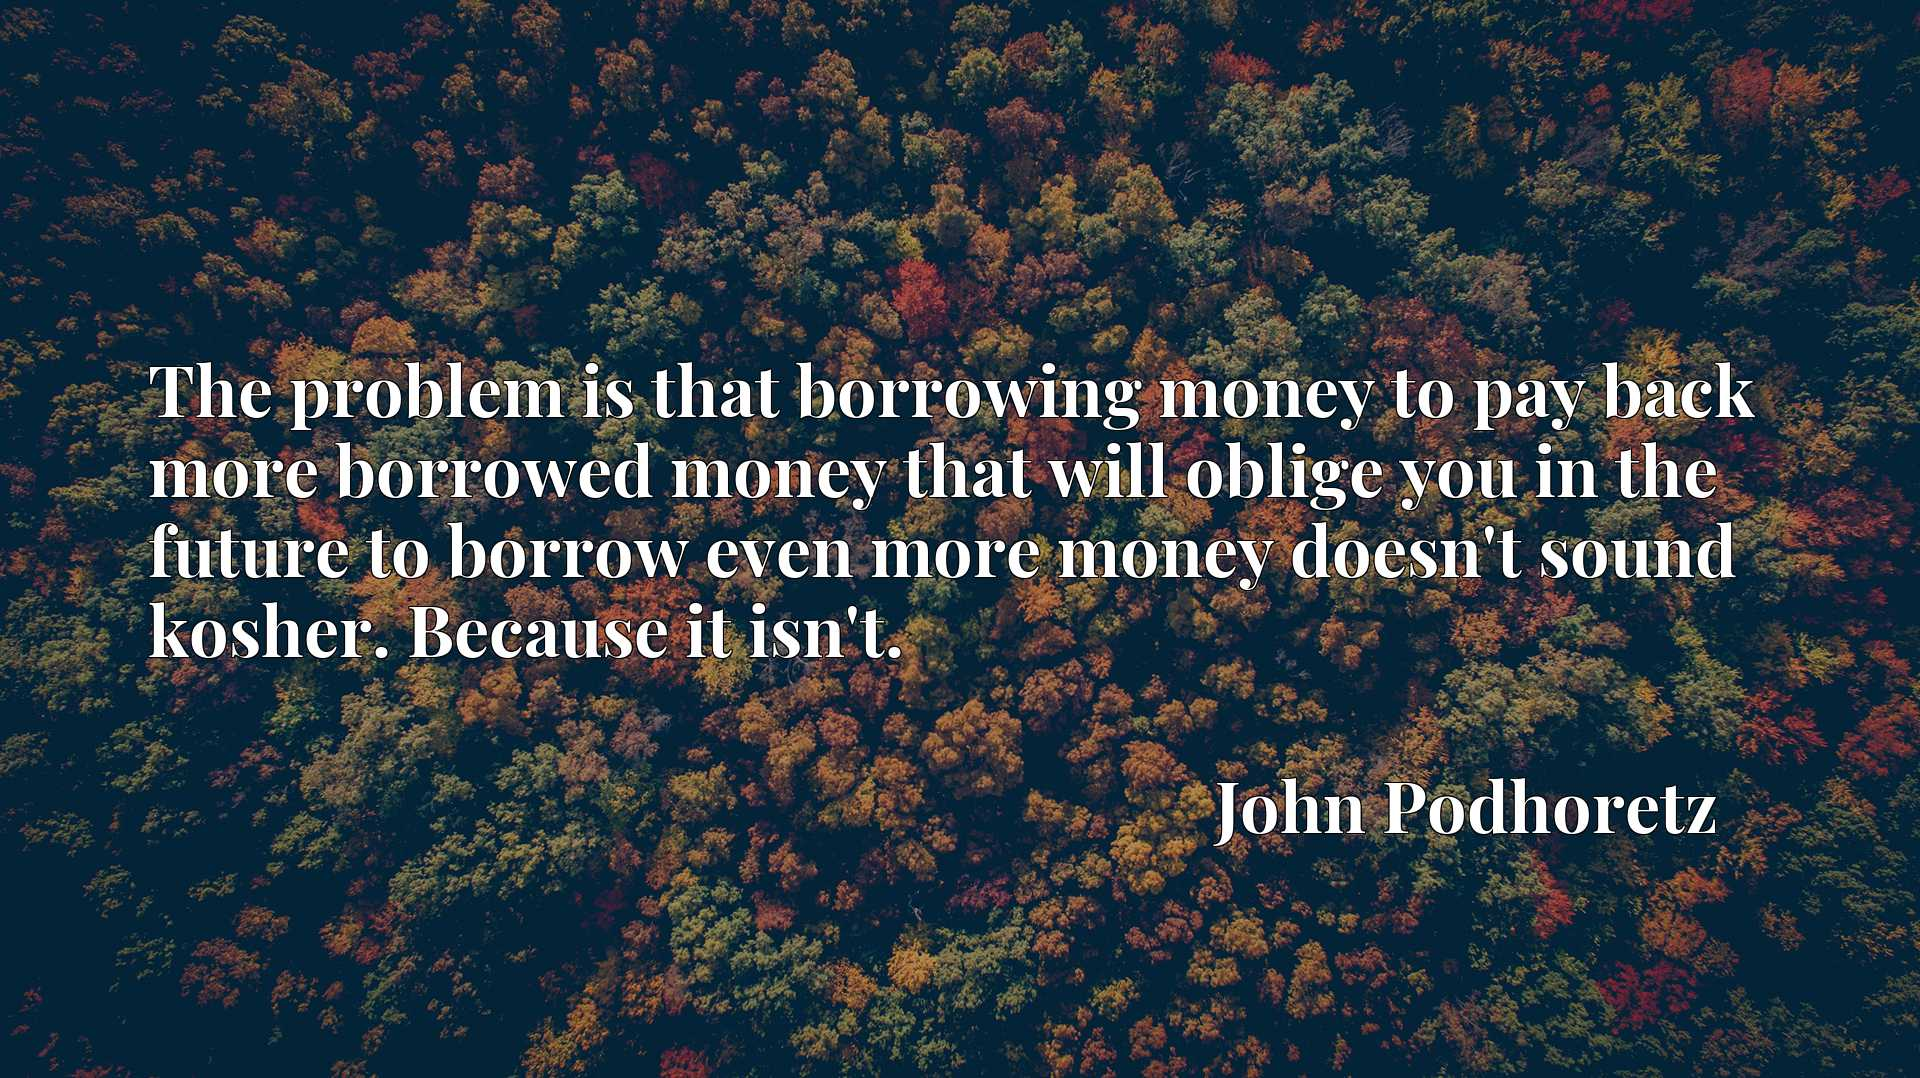 The problem is that borrowing money to pay back more borrowed money that will oblige you in the future to borrow even more money doesn't sound kosher. Because it isn't.